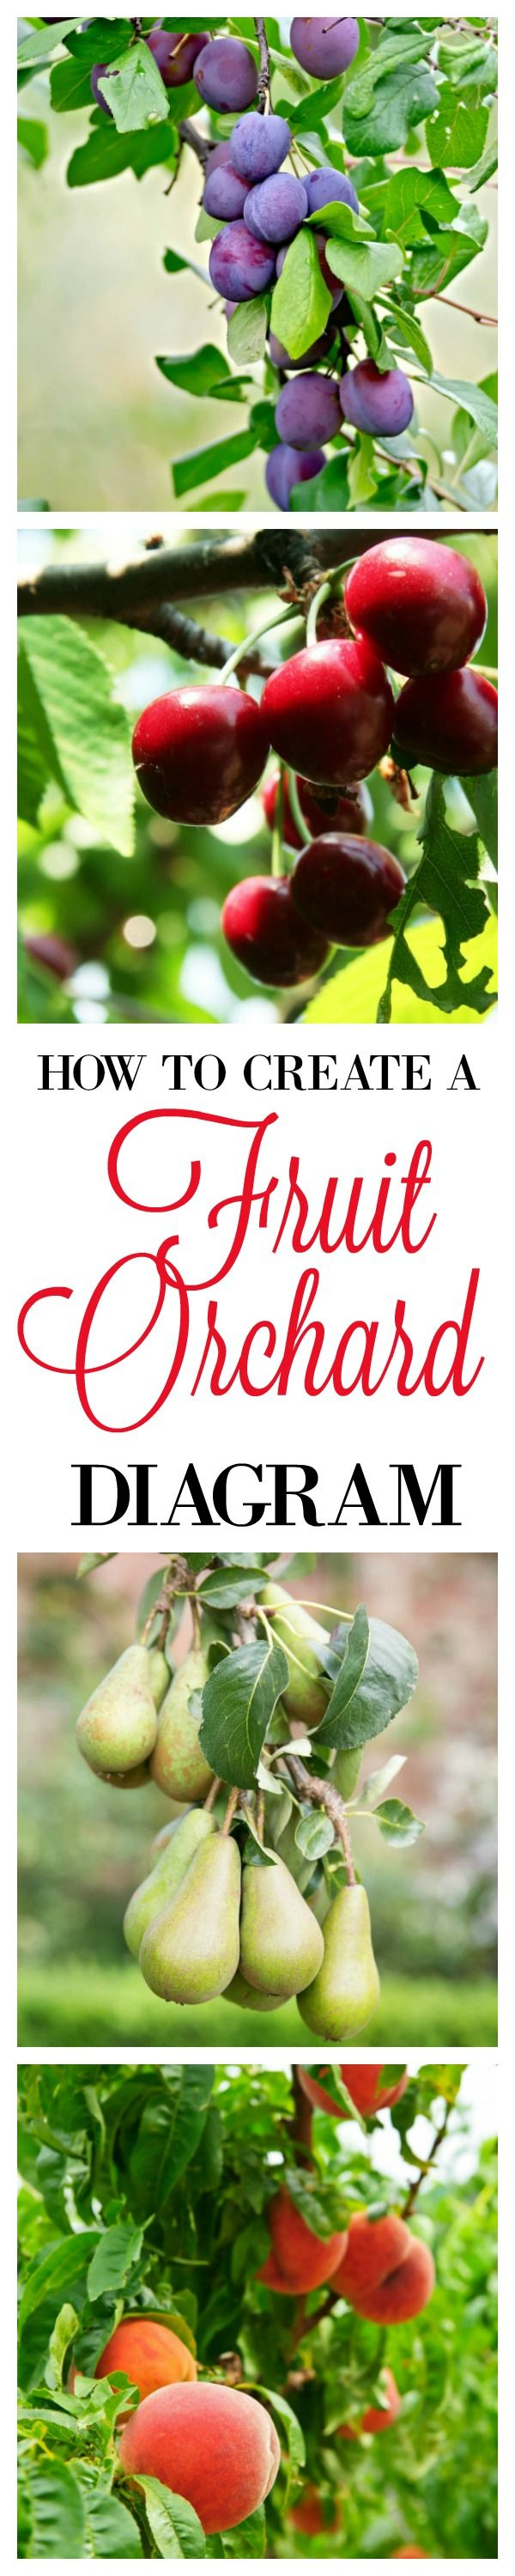 When I first planted the trees years ago I made a diagram of our property, added the fruit trees, and labeled them with what fruit they'd produce and the year I planted them. Over time I've lost and replaced trees adding and subtracting from my master list. Follow the link for a step by step tutorial on how to make your own Orchard Diagram for FREE.